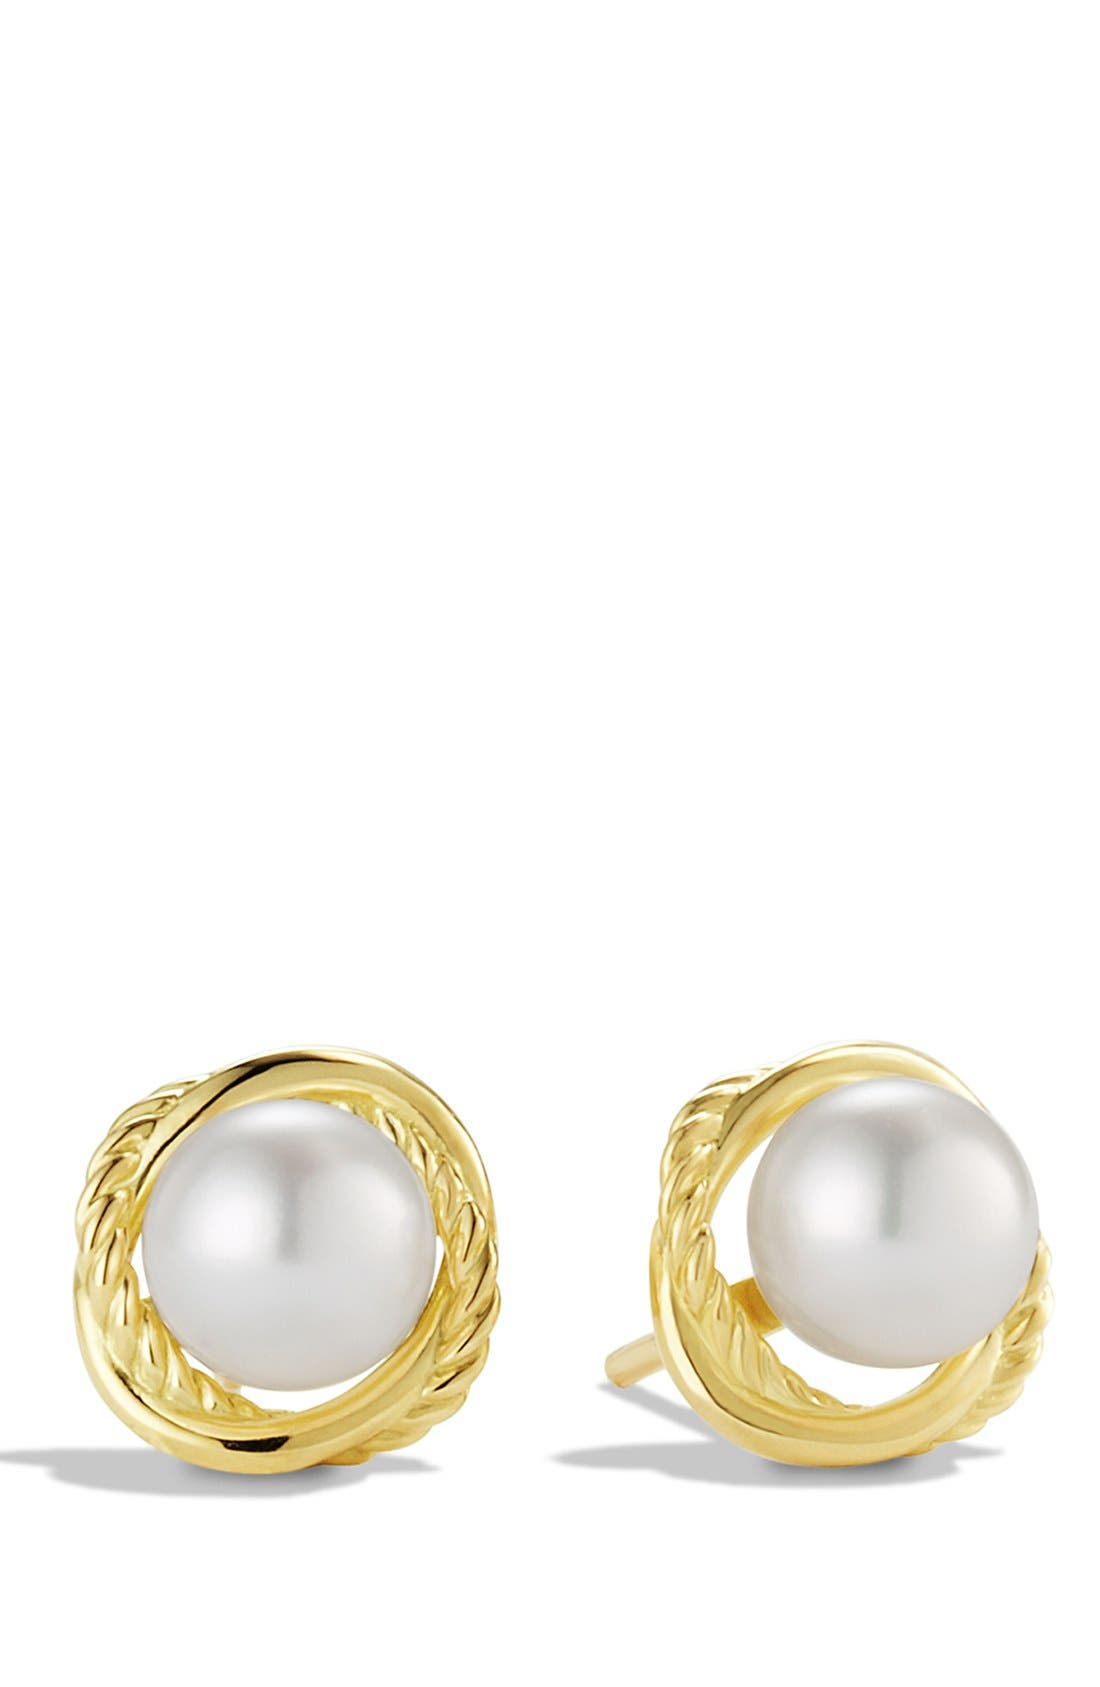 'Infinity' Earrings with Pearls in Gold,                             Main thumbnail 1, color,                             101